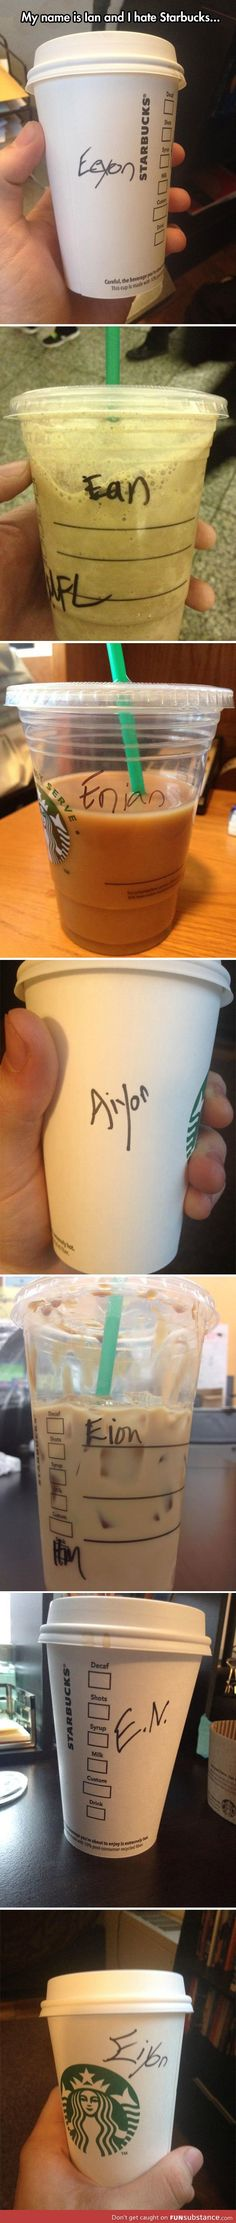 Not even once they got it right